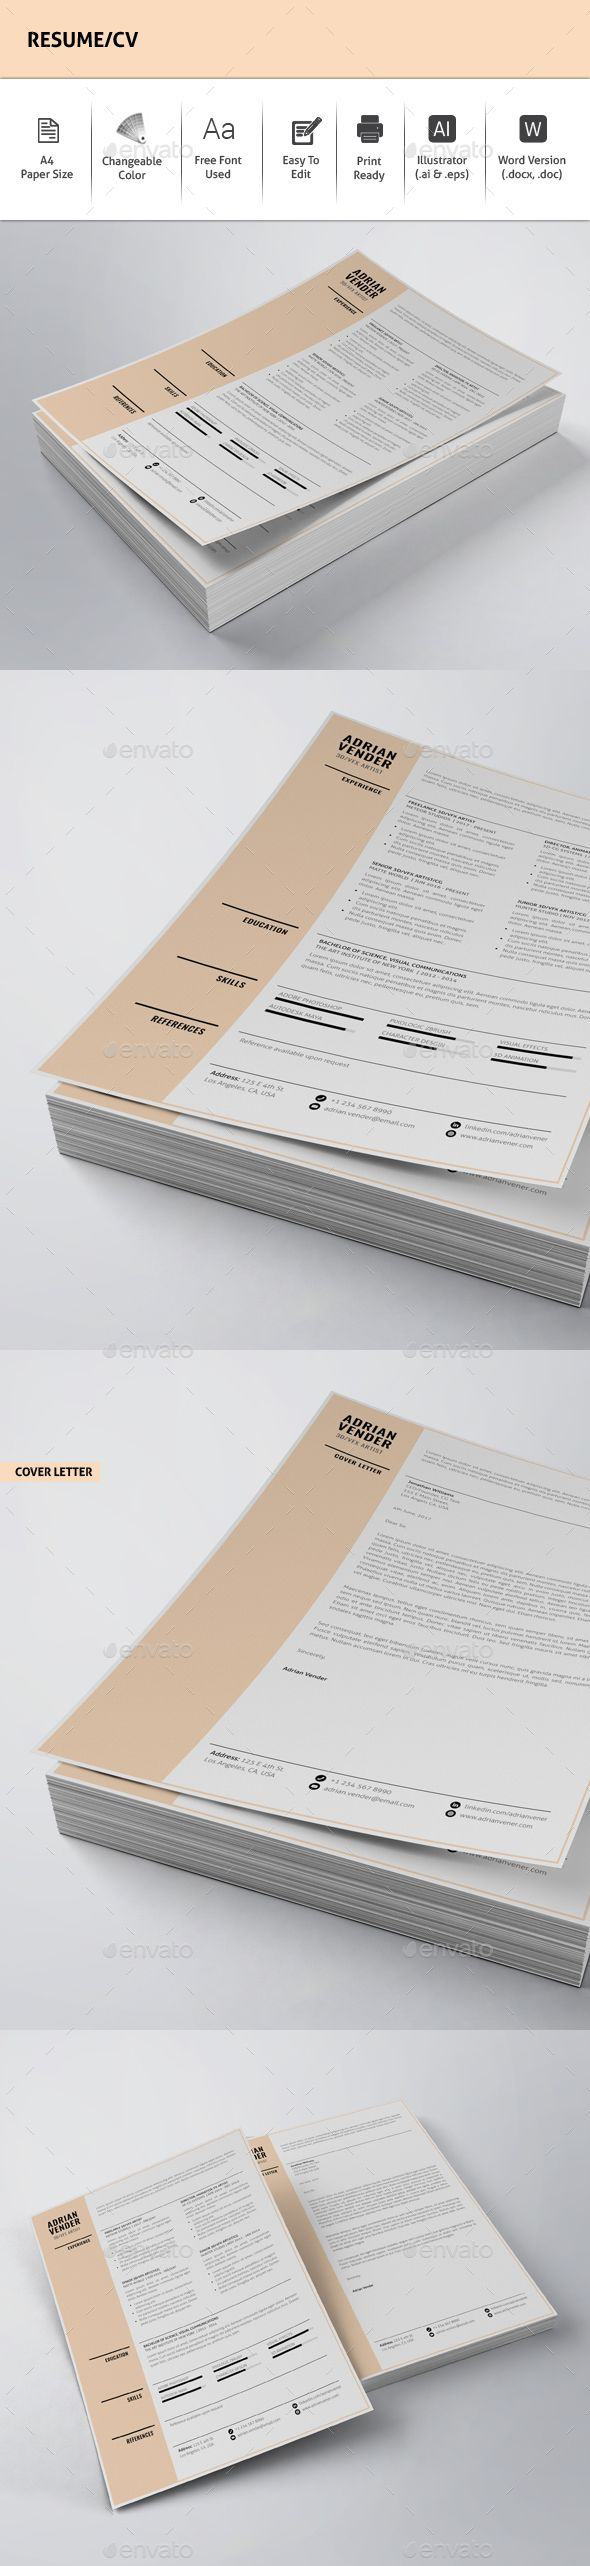 23 Best Resume Images On Pinterest Resume Design Print